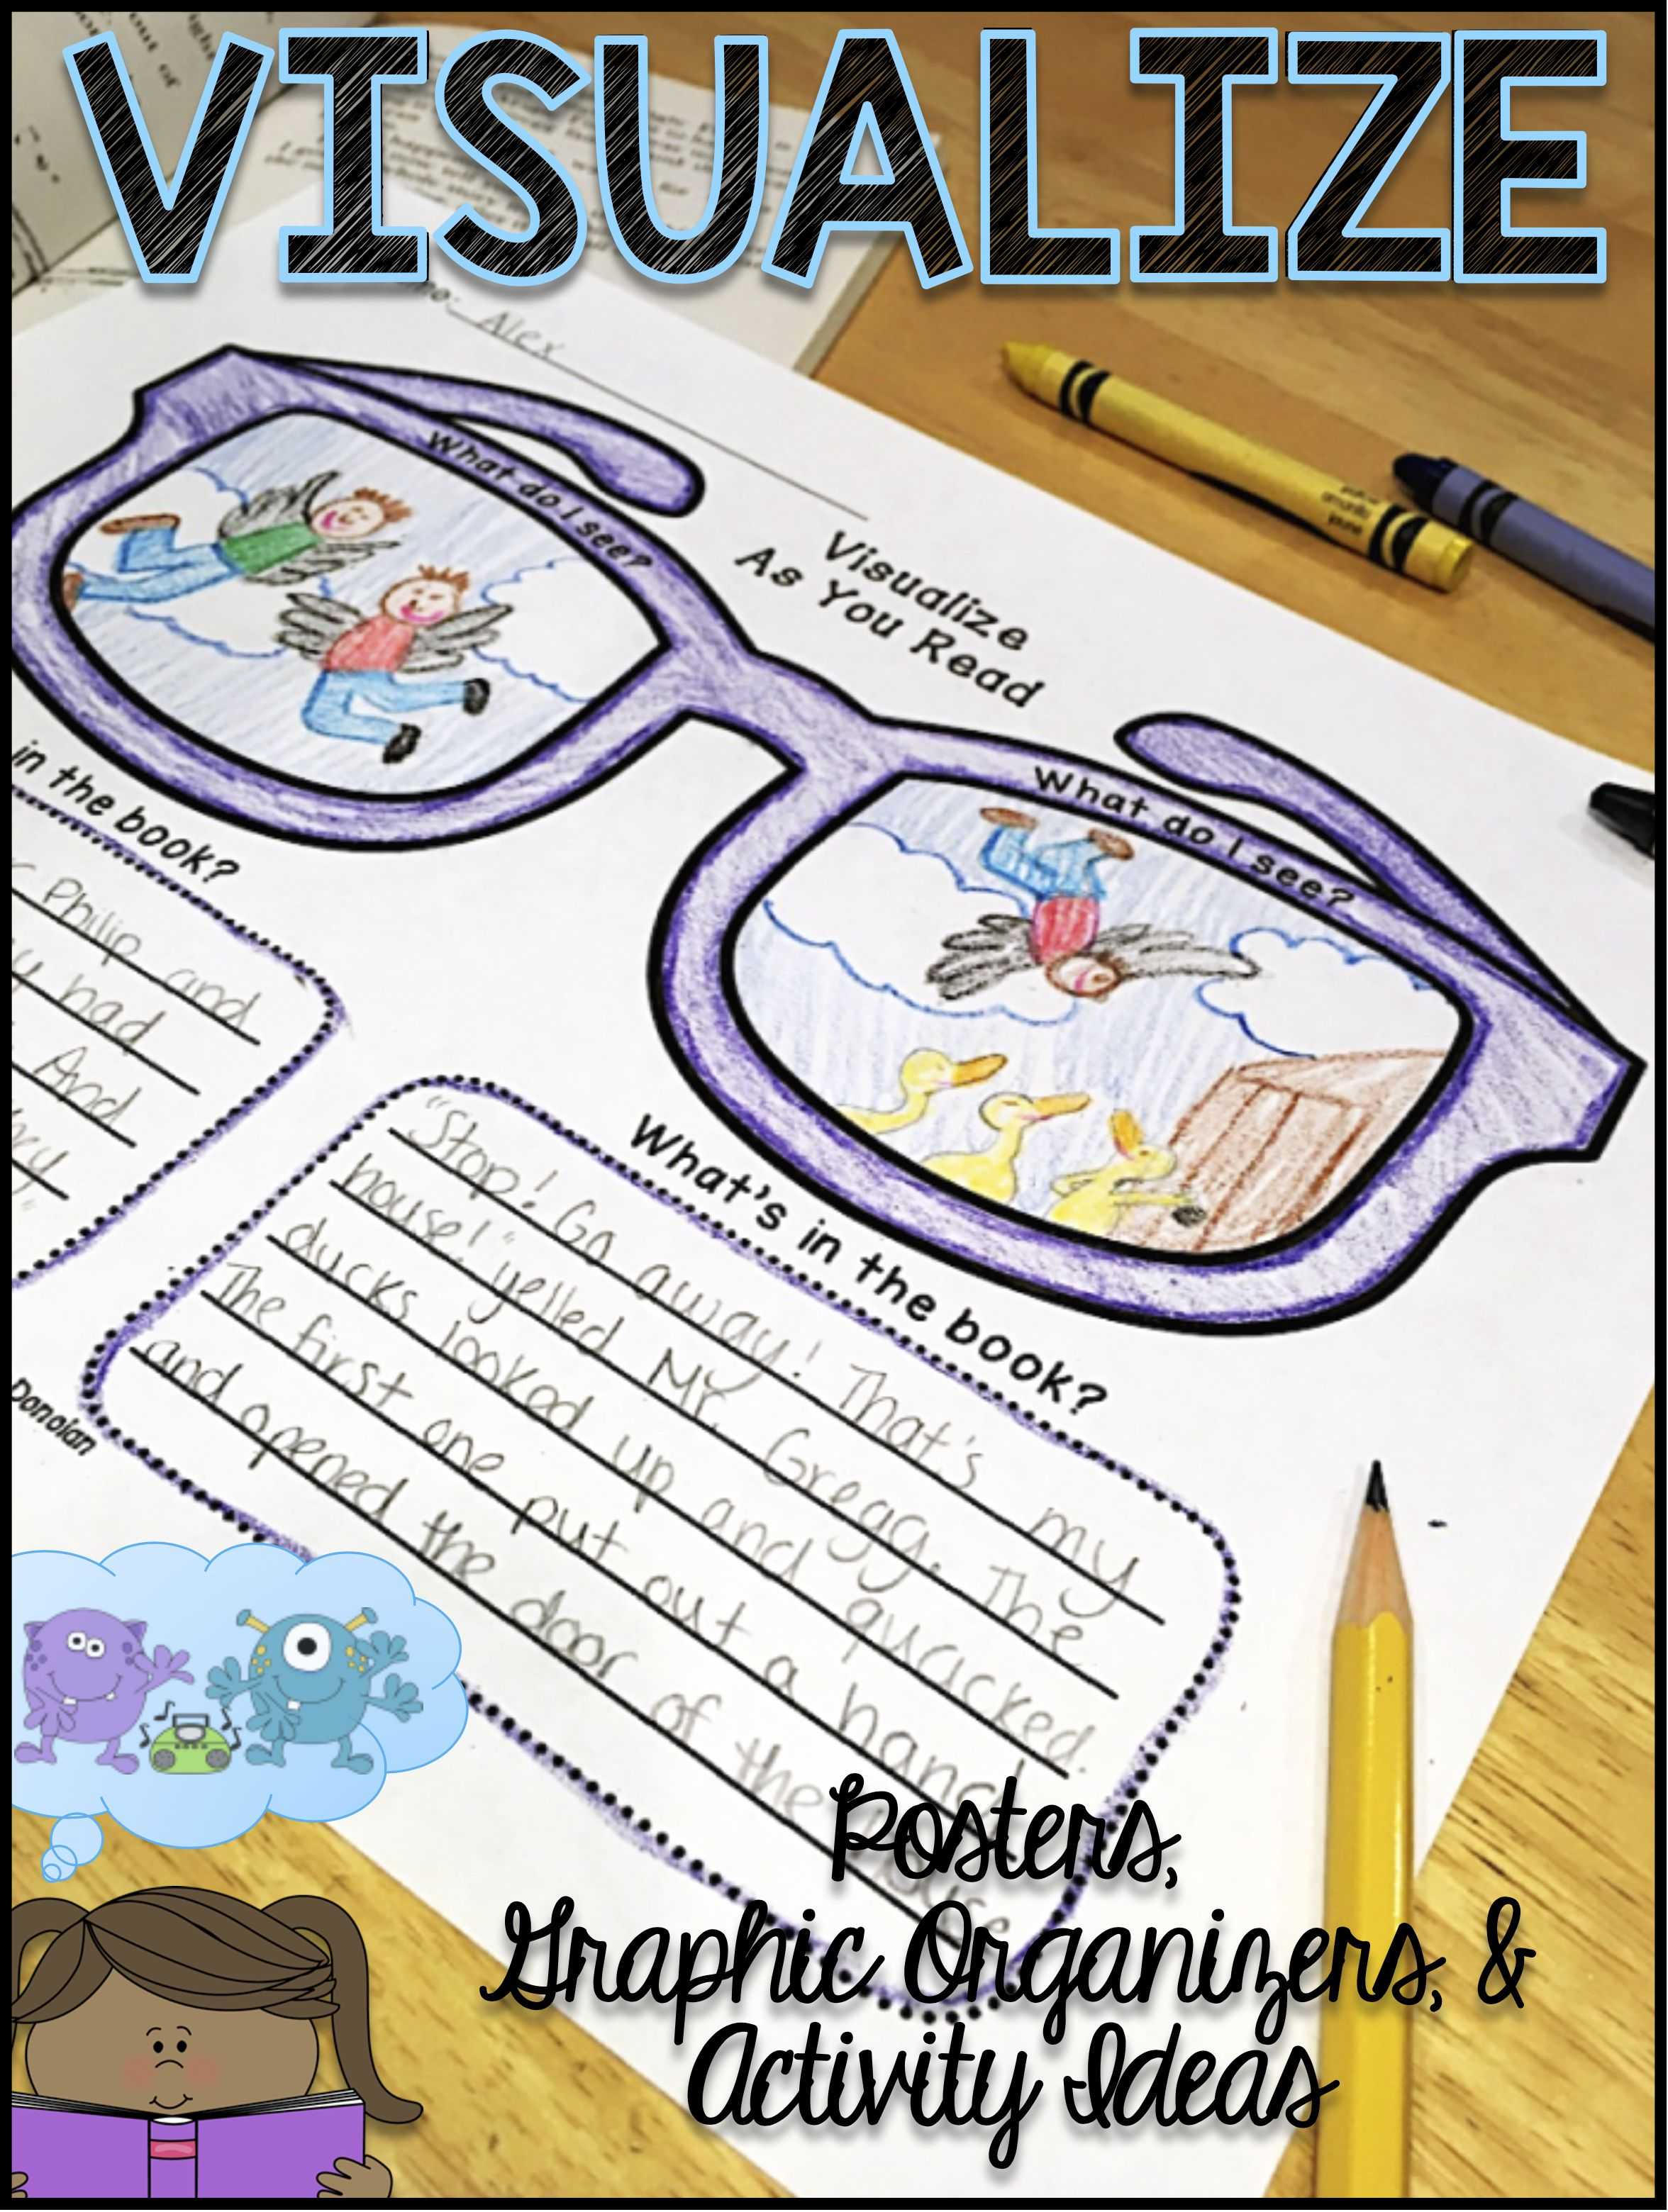 Visualizing Reading Strategy Poster Graphic Organizers Amp Activity Ideas